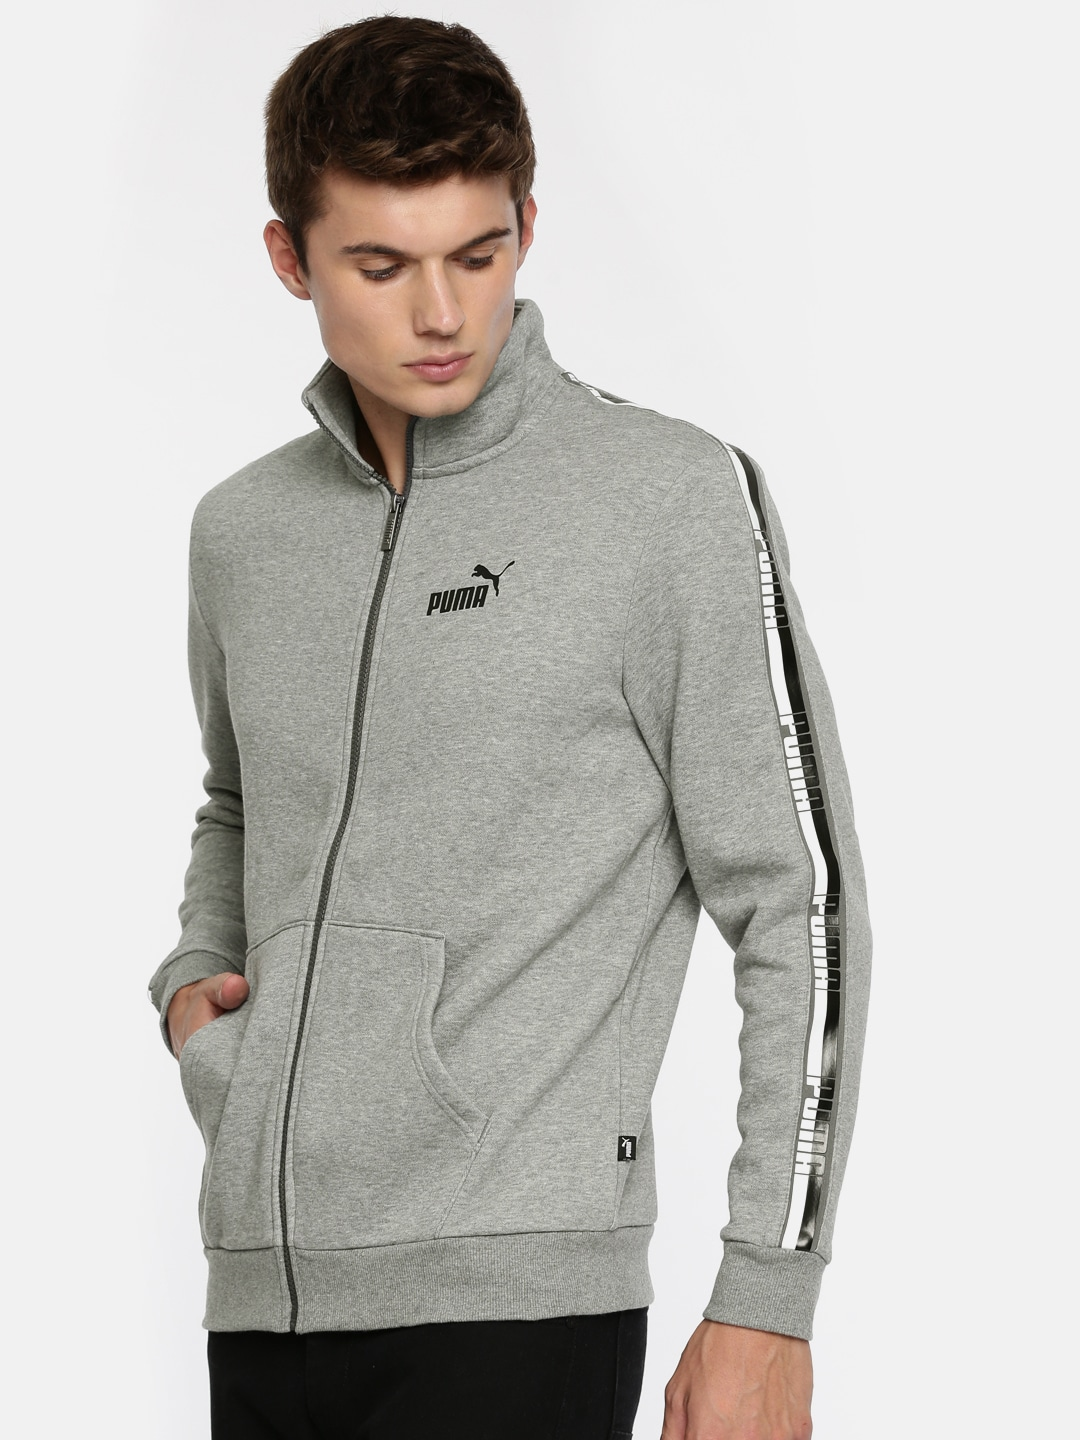 Tape Sweatshirt Hooded Ess Elevated Puma Grey eED2I9YWH